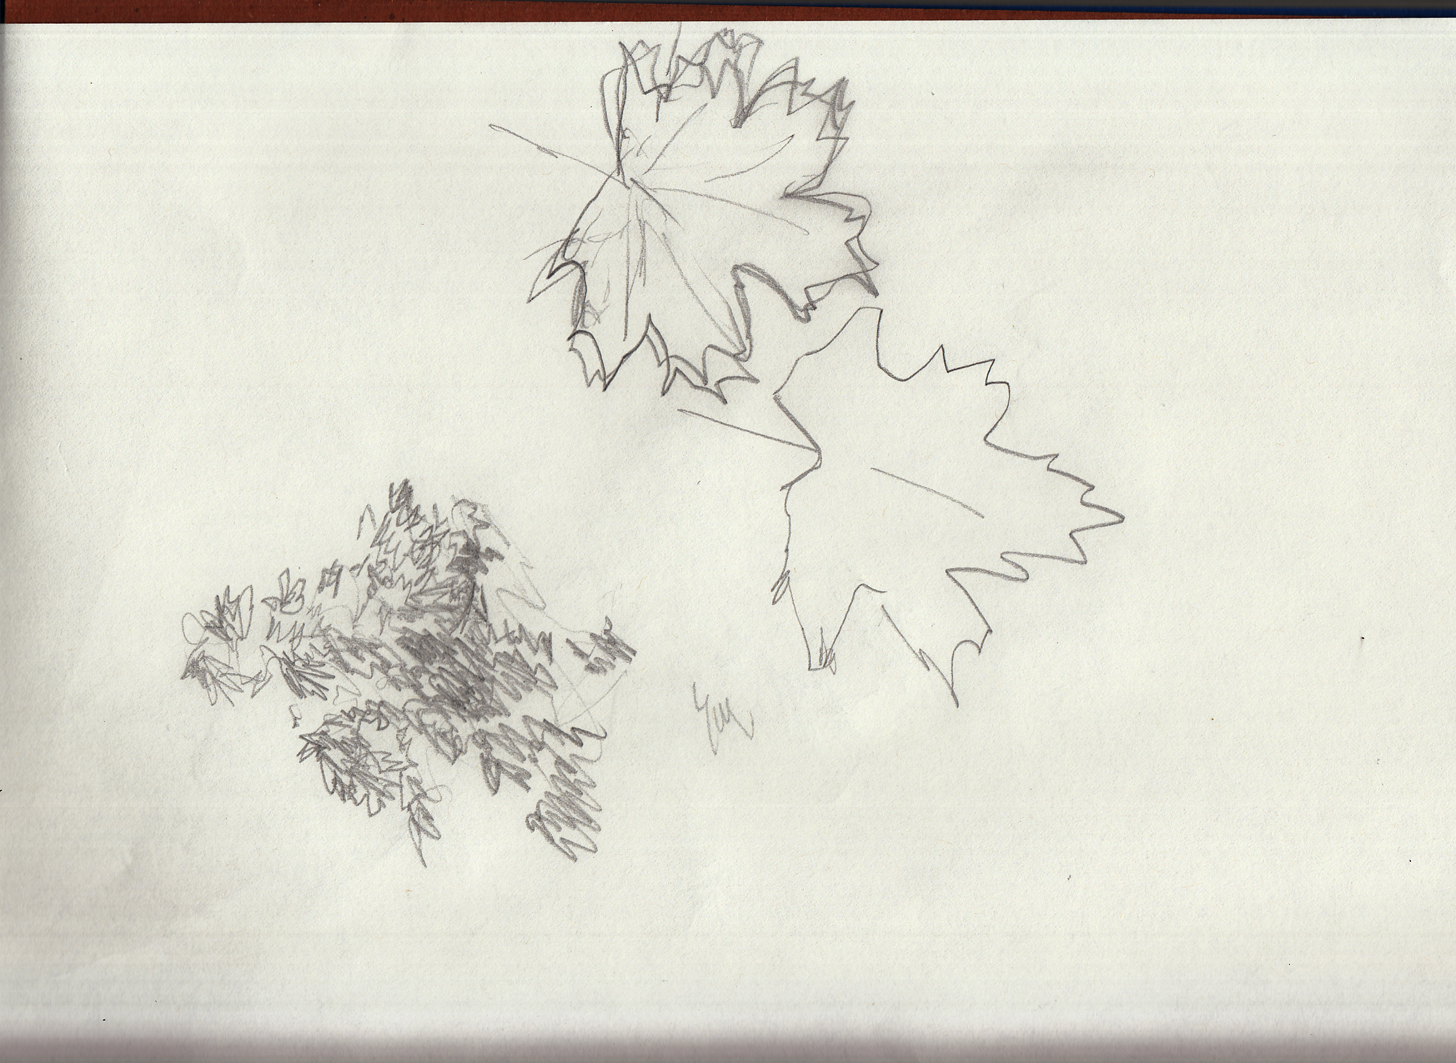 leaf sketches 2 5-20